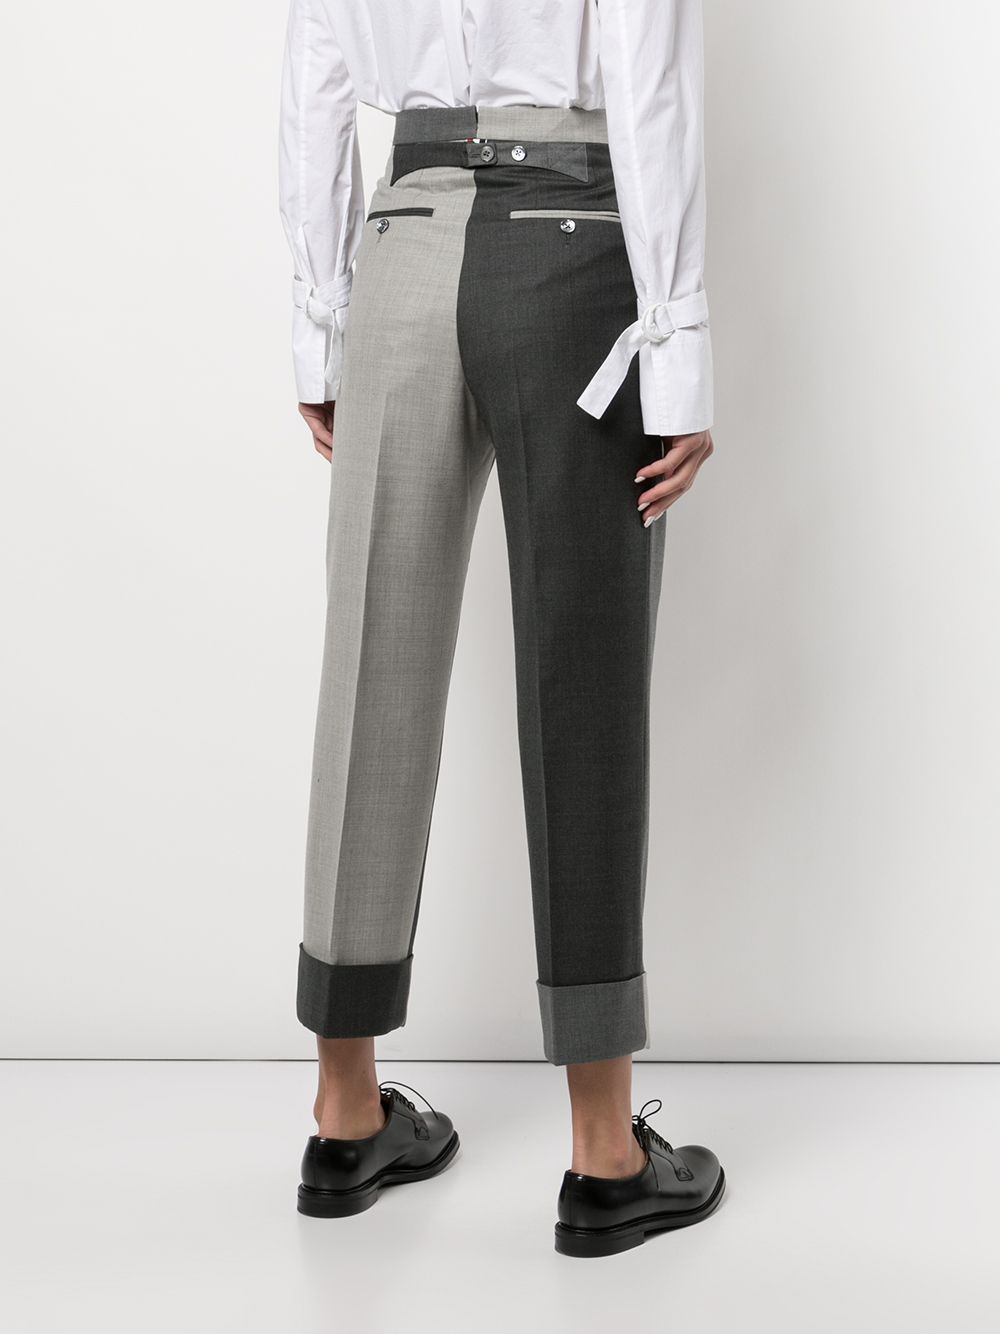 THOM BROWNE WOMEN HIGH WAIST SINGLE PLEAT TROUSER - FIT 4 - IN SUPER 120'S TWILL FUNMIX